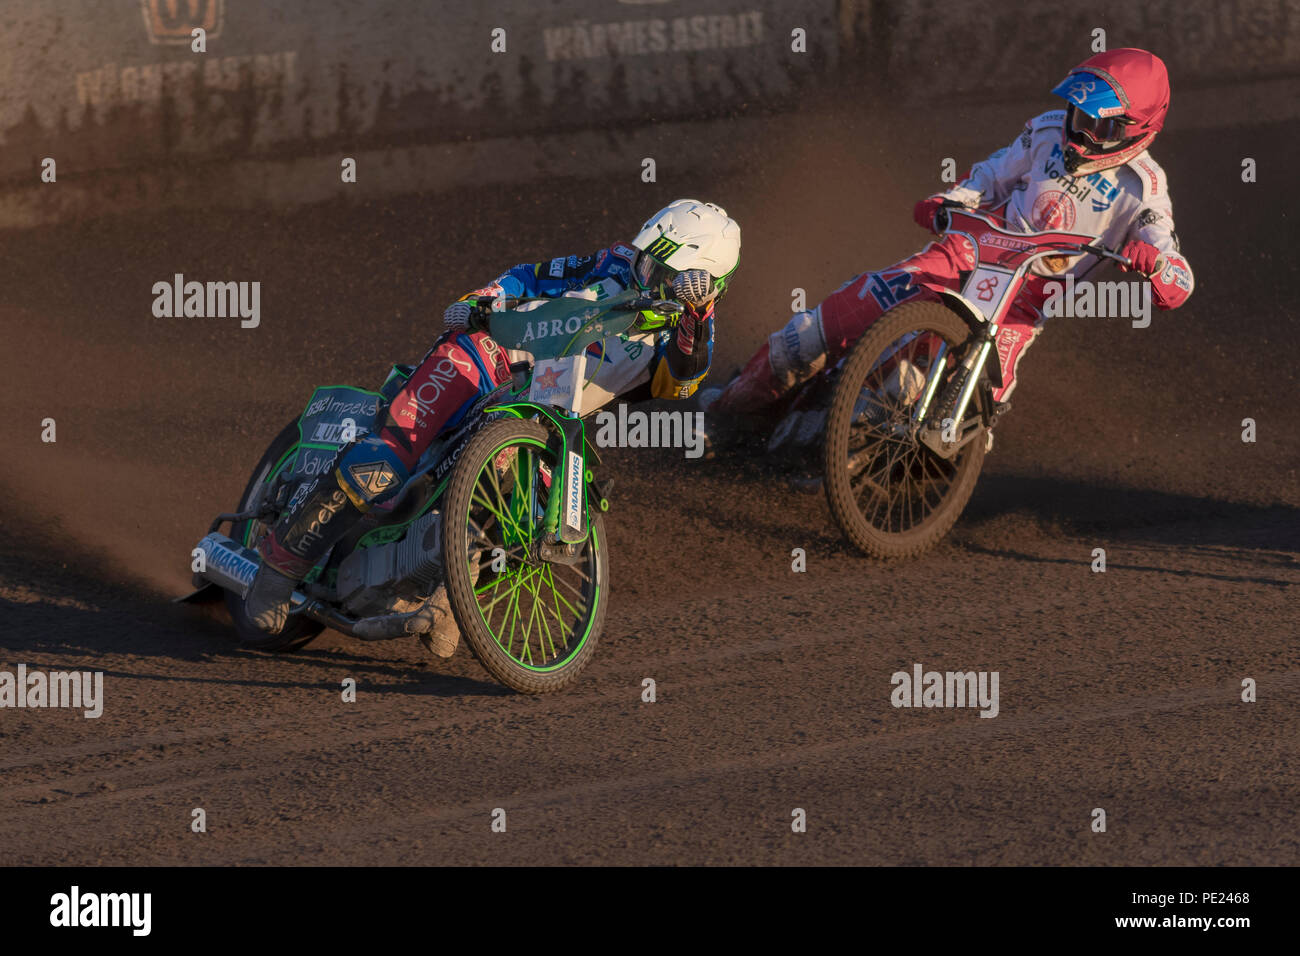 Speedway Riders Stock Photos & Speedway Riders Stock Images